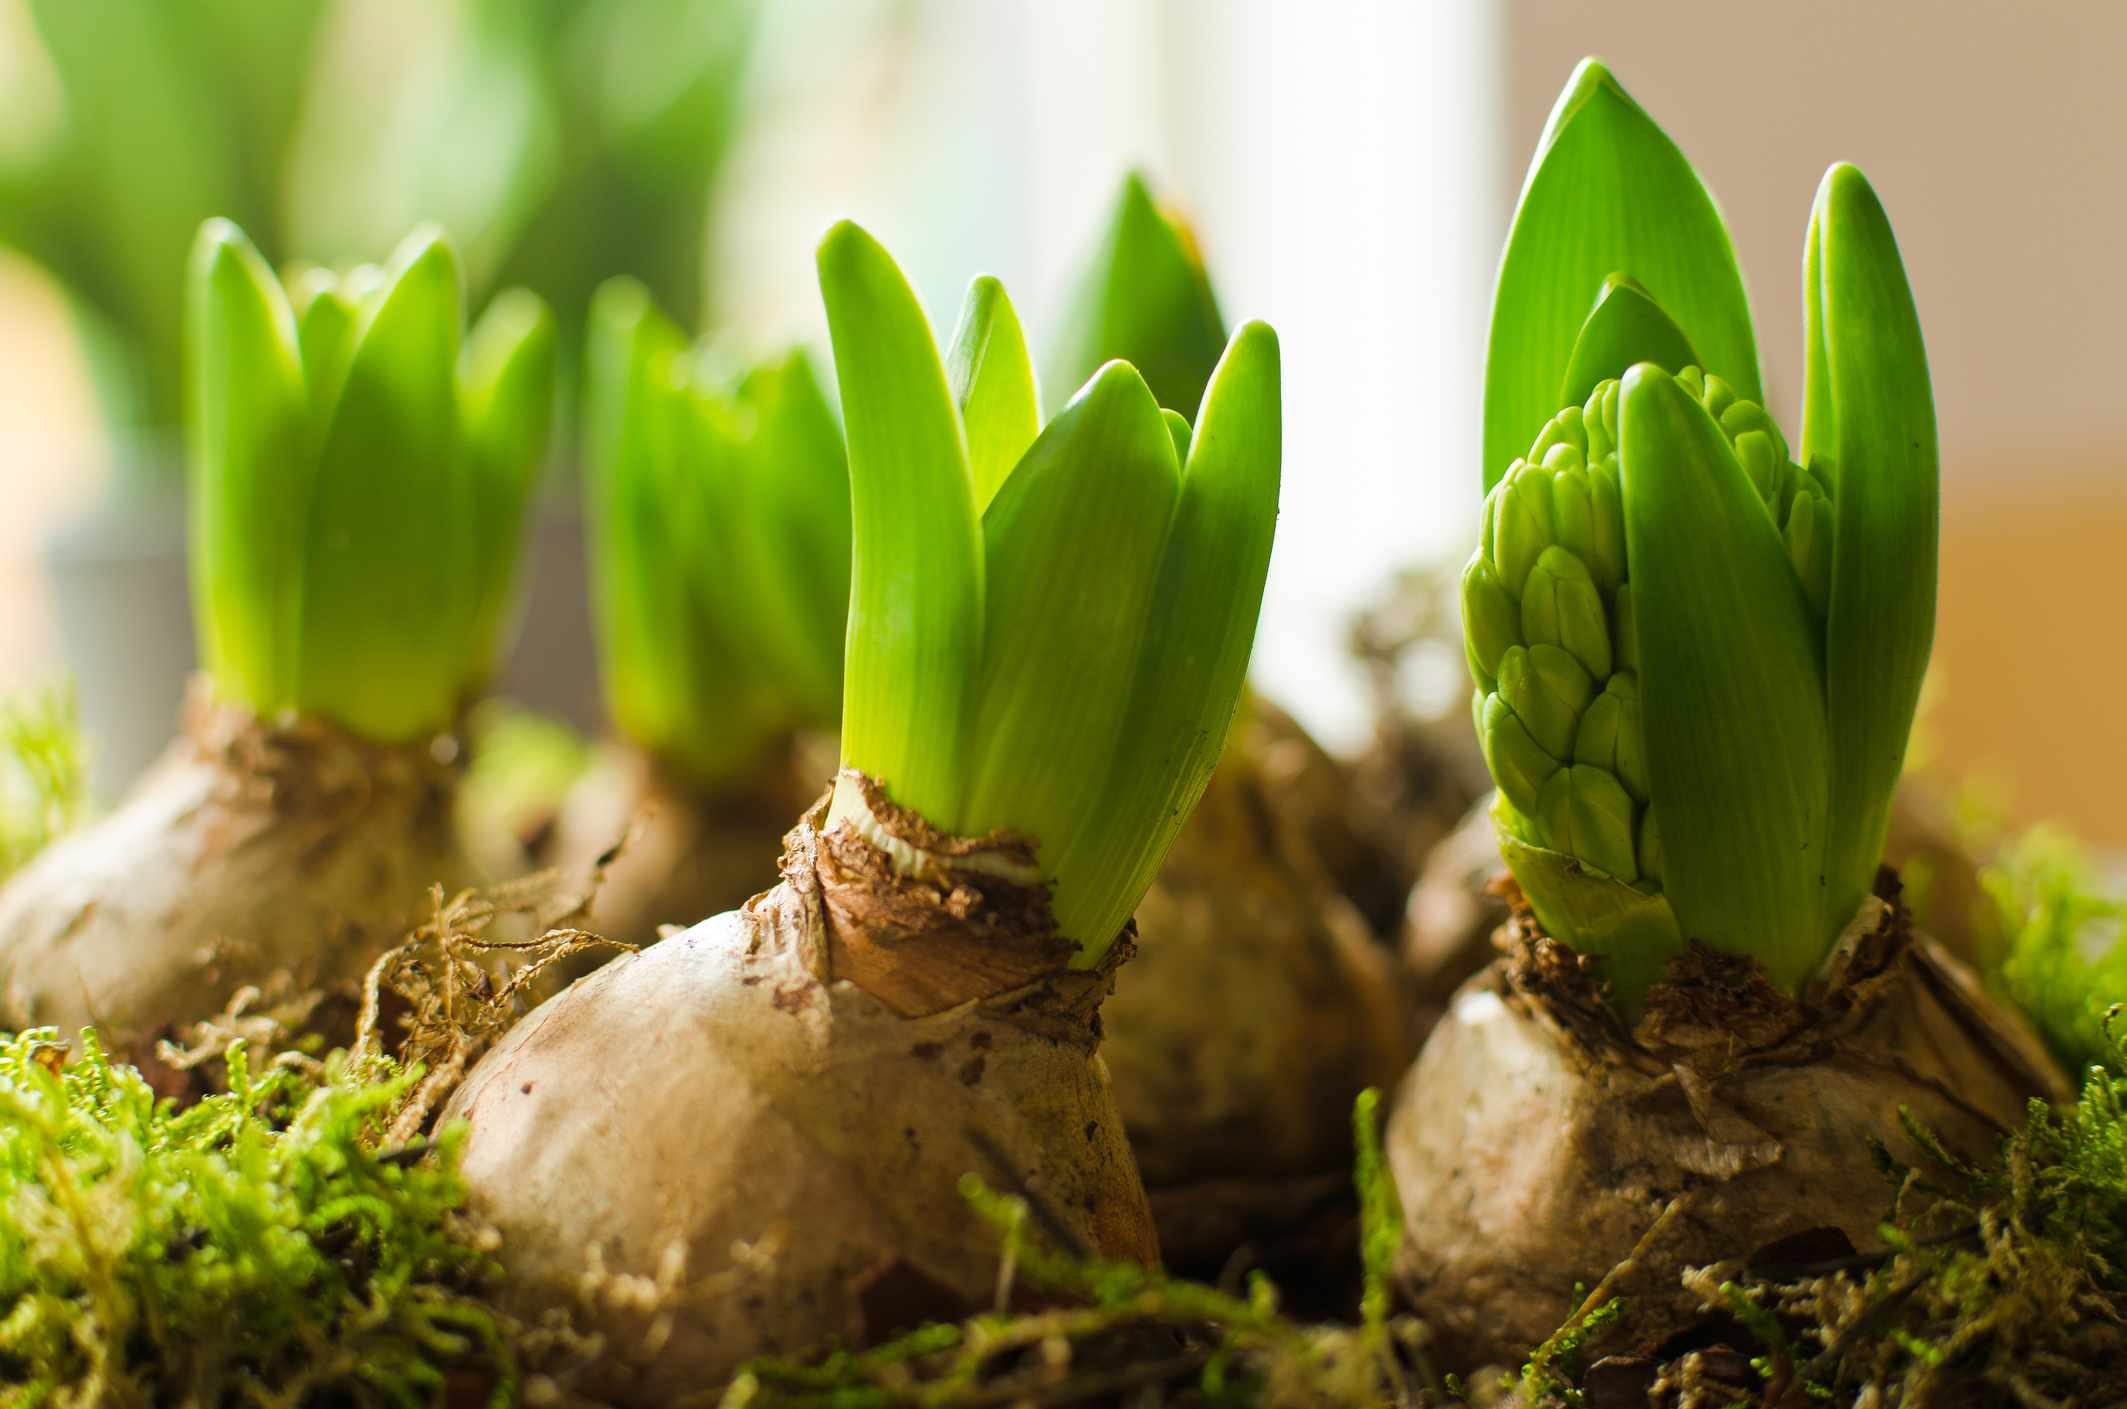 Hyacinth flower growing from a bulb